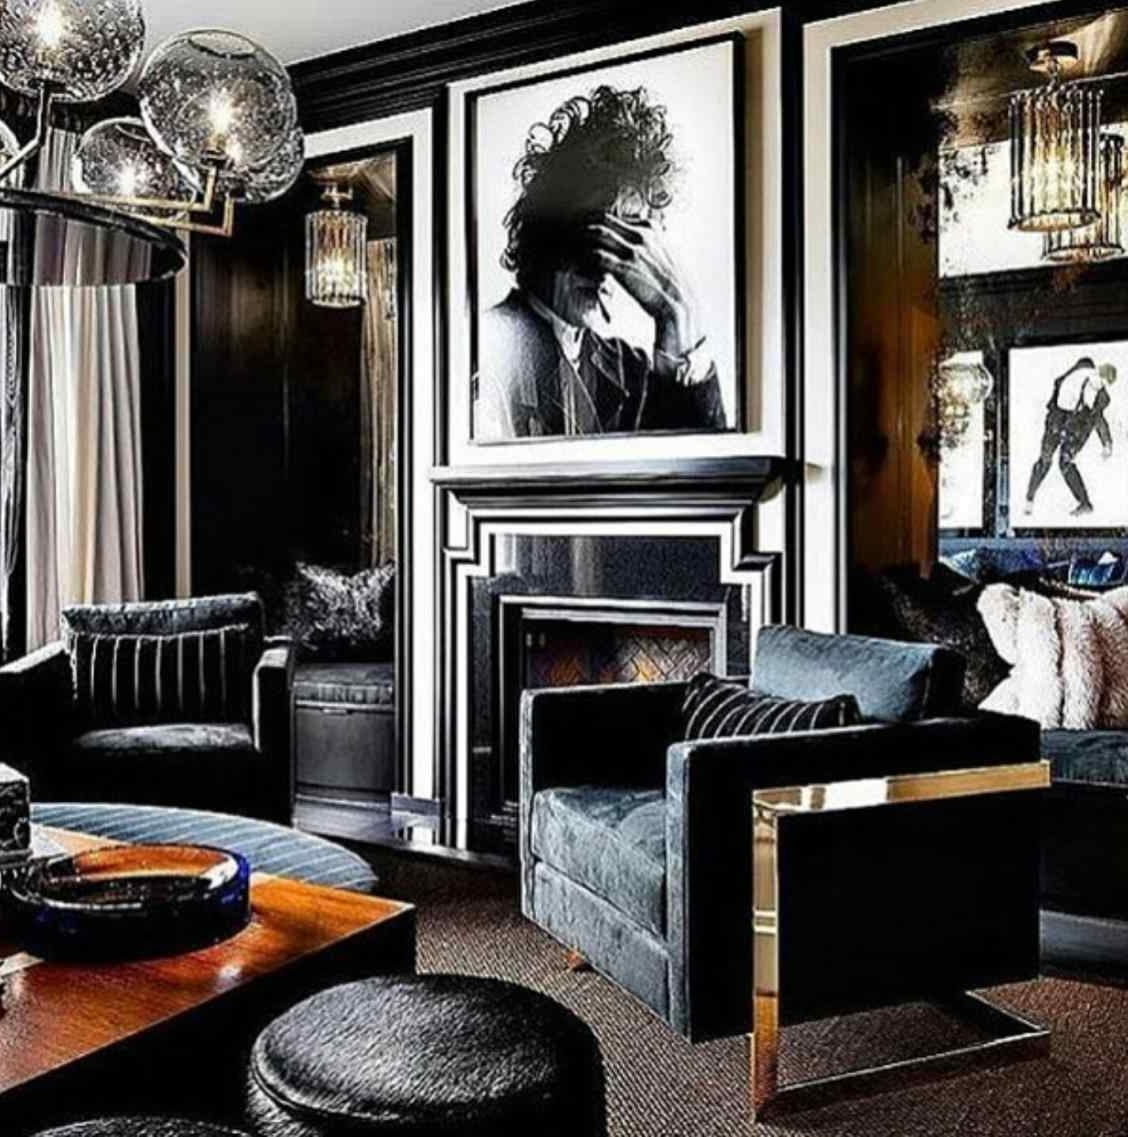 Latest Masculine Wall Art With Regard To Type Scda Masculine Living Room Wall Art Mixeduse Development (View 8 of 15)